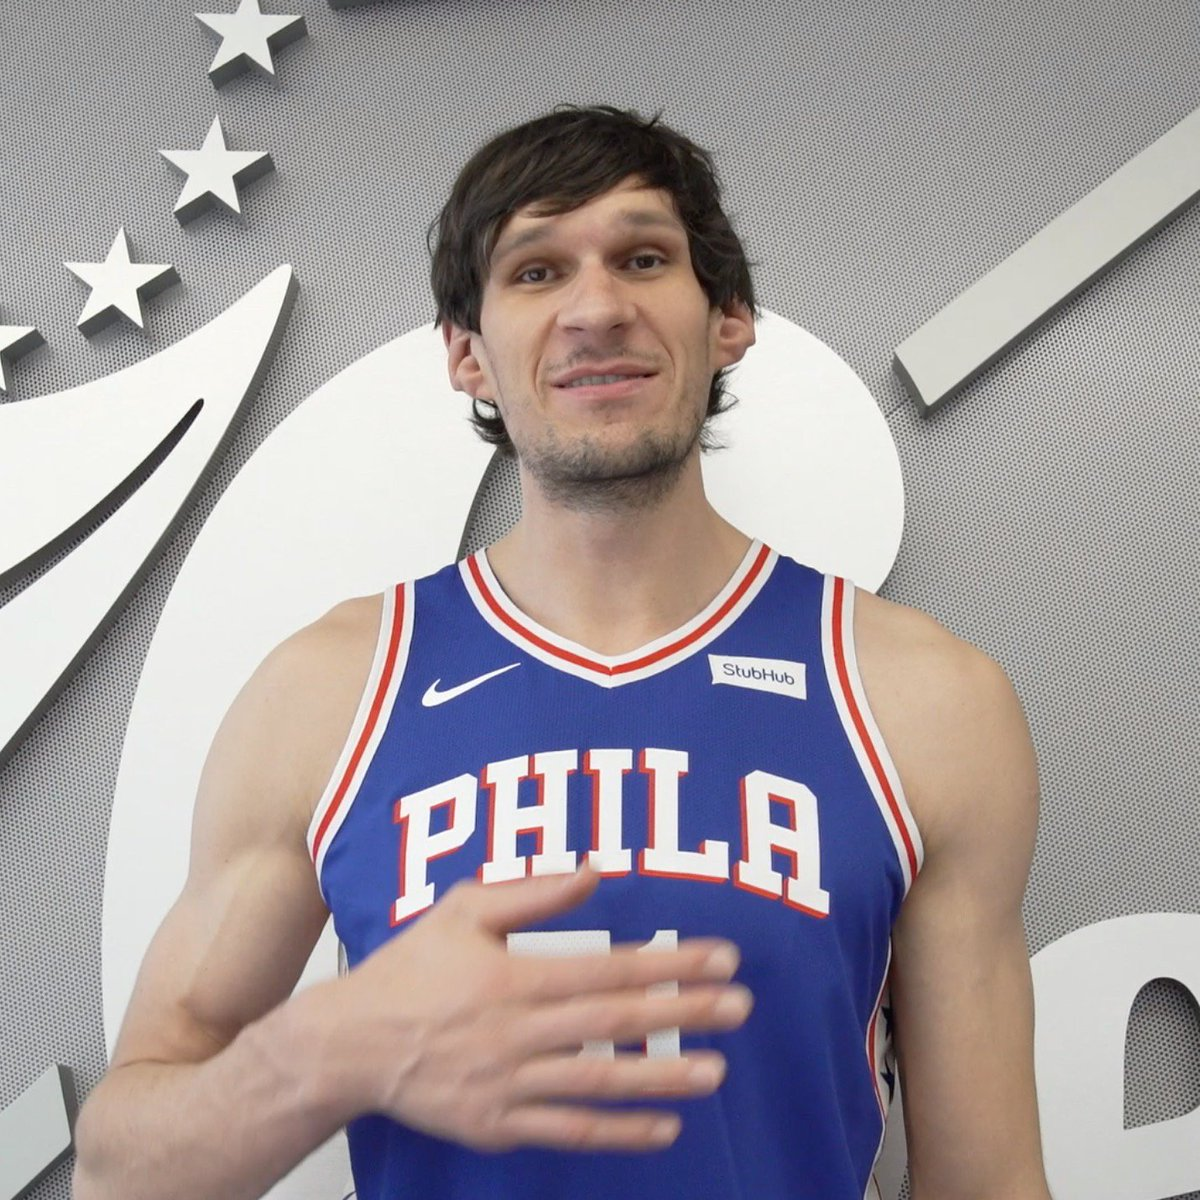 Philly! @BobanMarjanovic has a message for you. #HereTheyCome